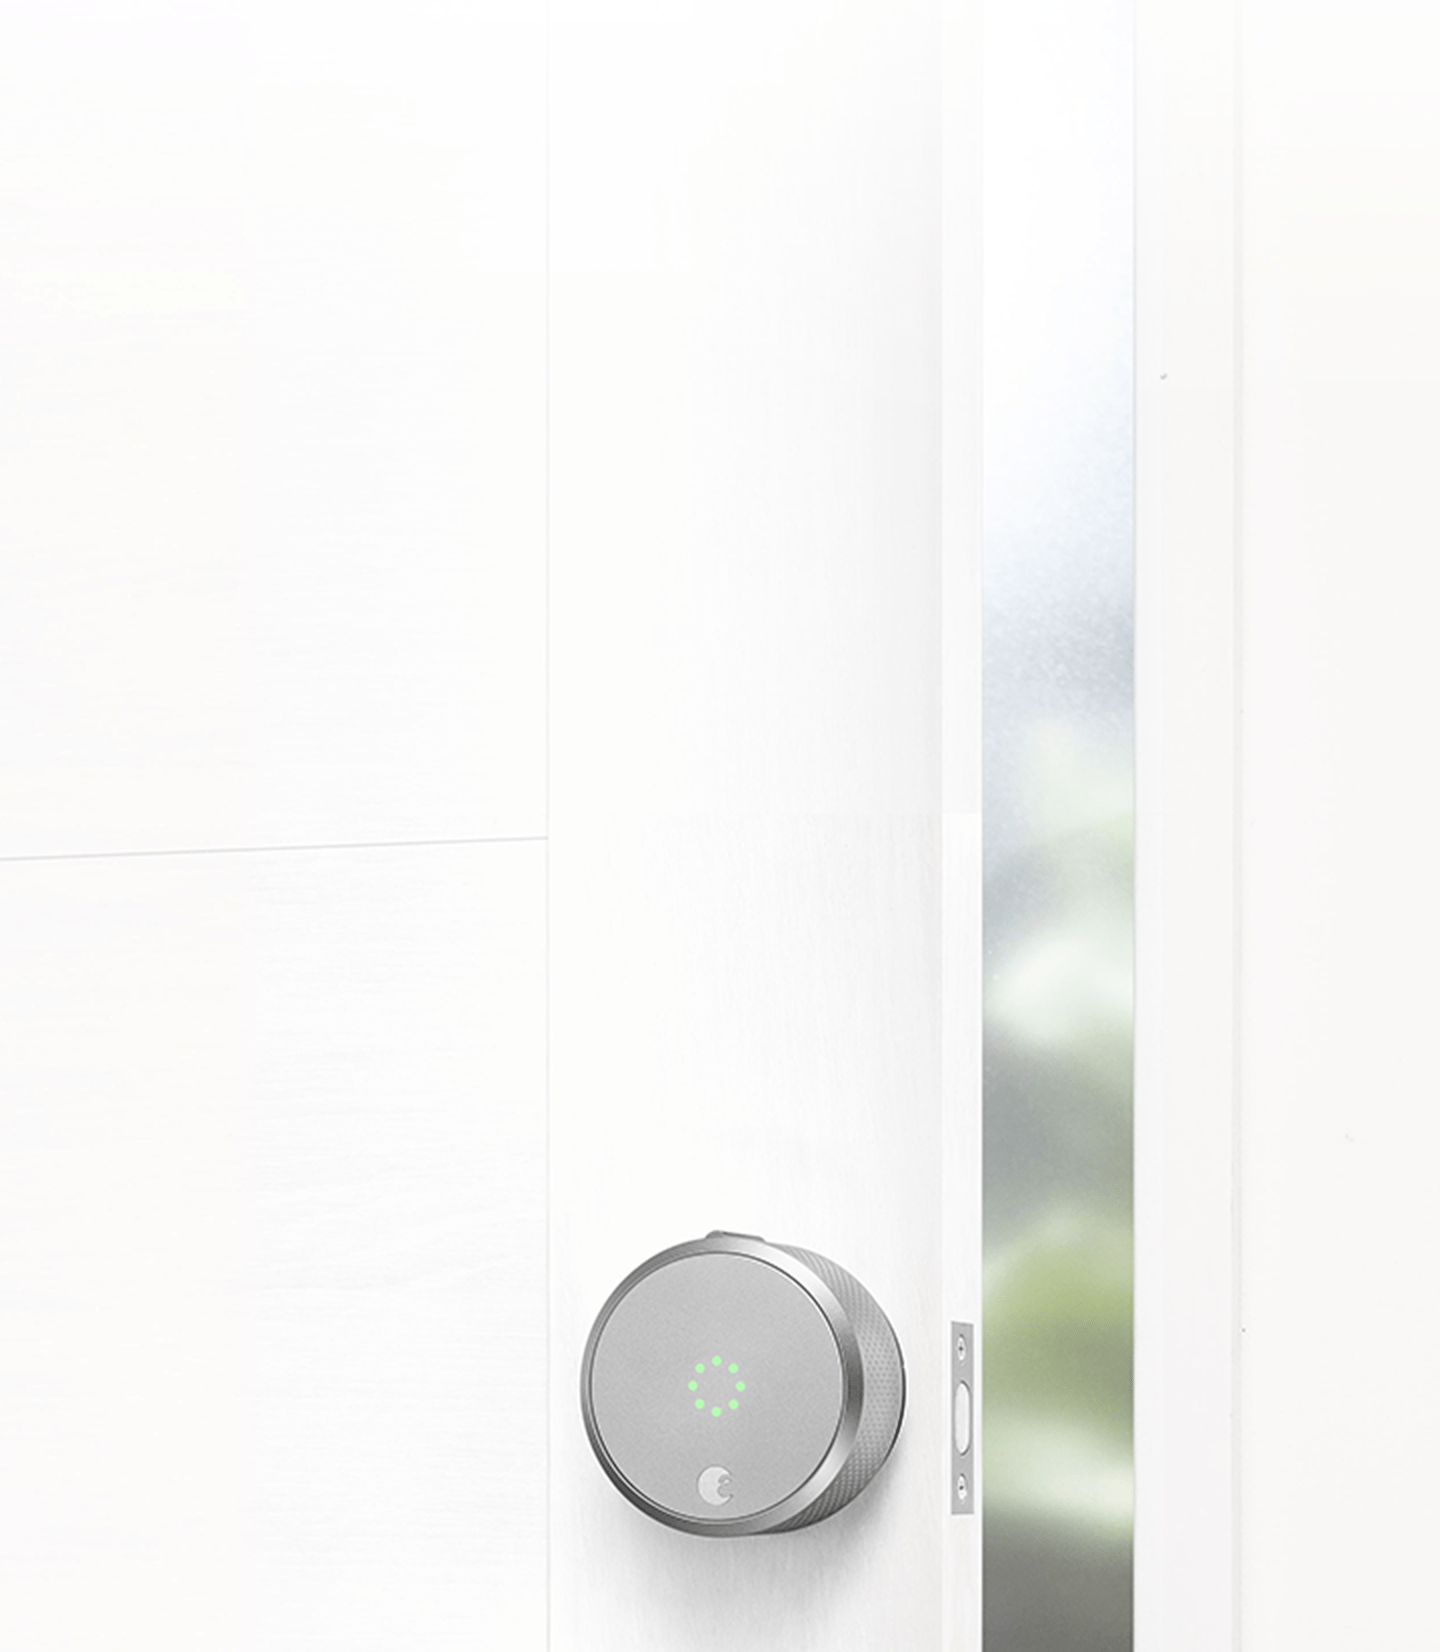 Product Smart August Smart Lock Pro The Ultimate Smart Lock For Your Smart Home